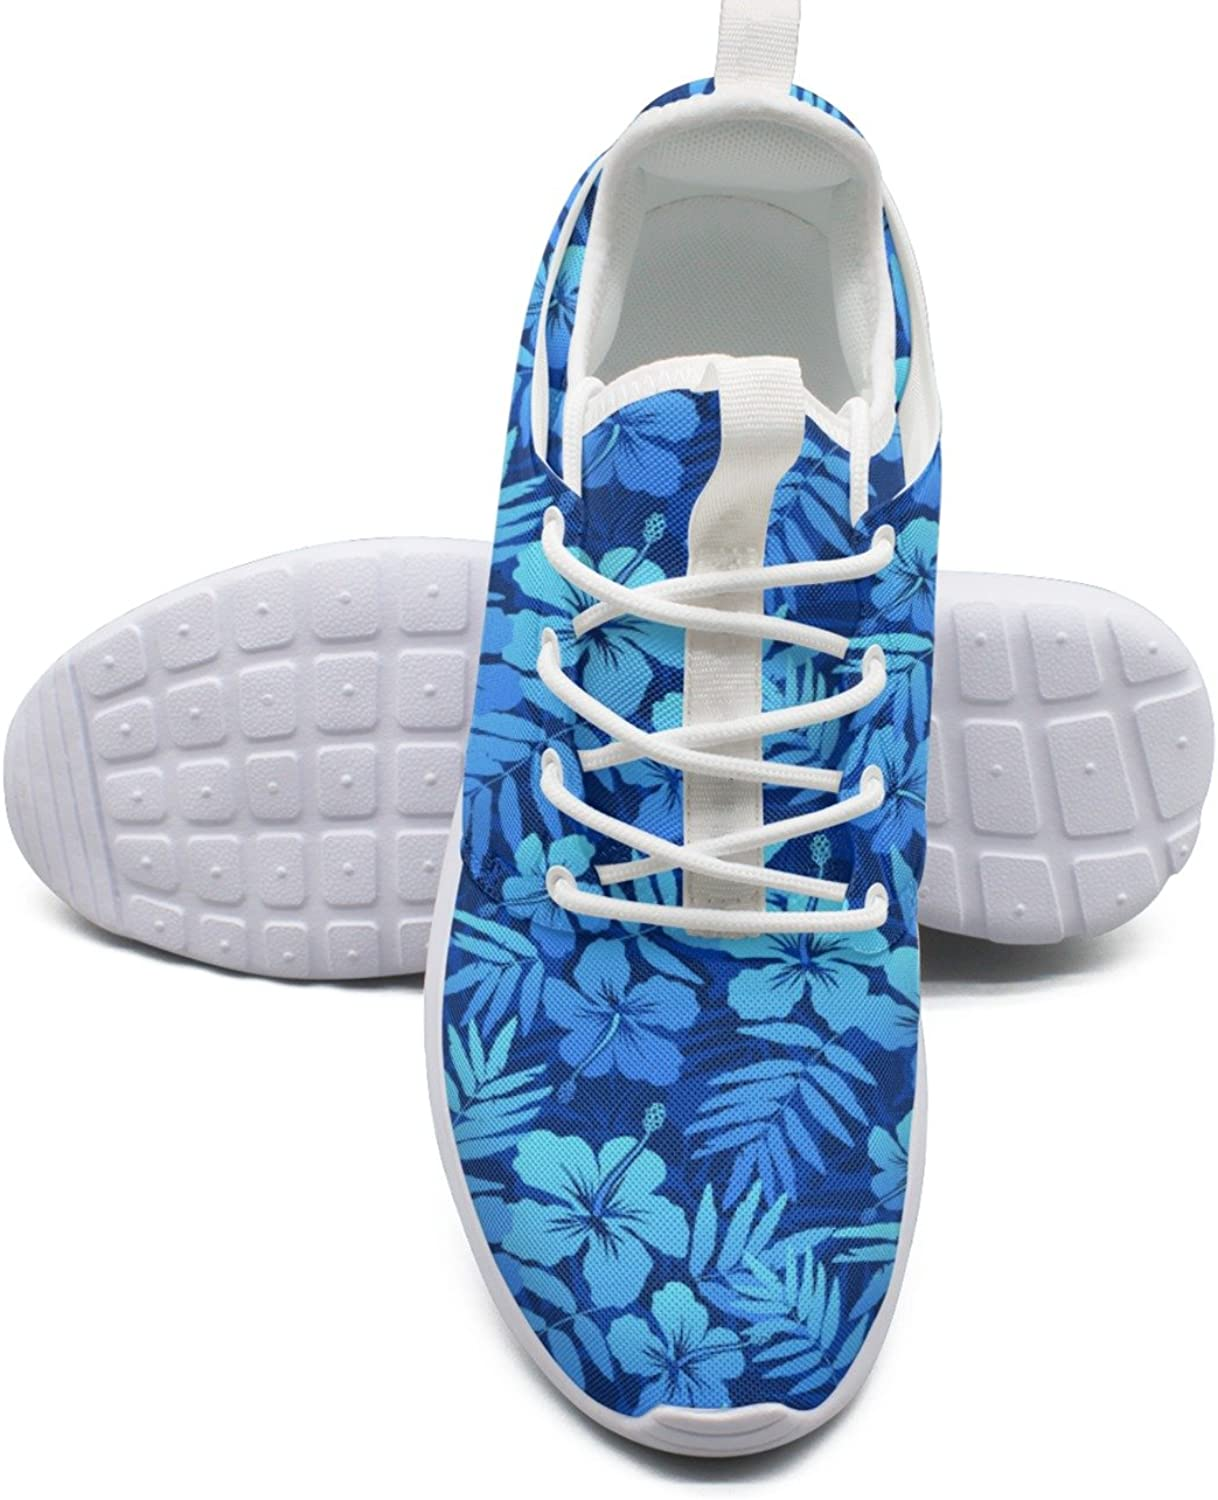 bluee Tropical Flowers Women's Lightweight Mesh Tennis Sneakers Climbing Athletic shoes